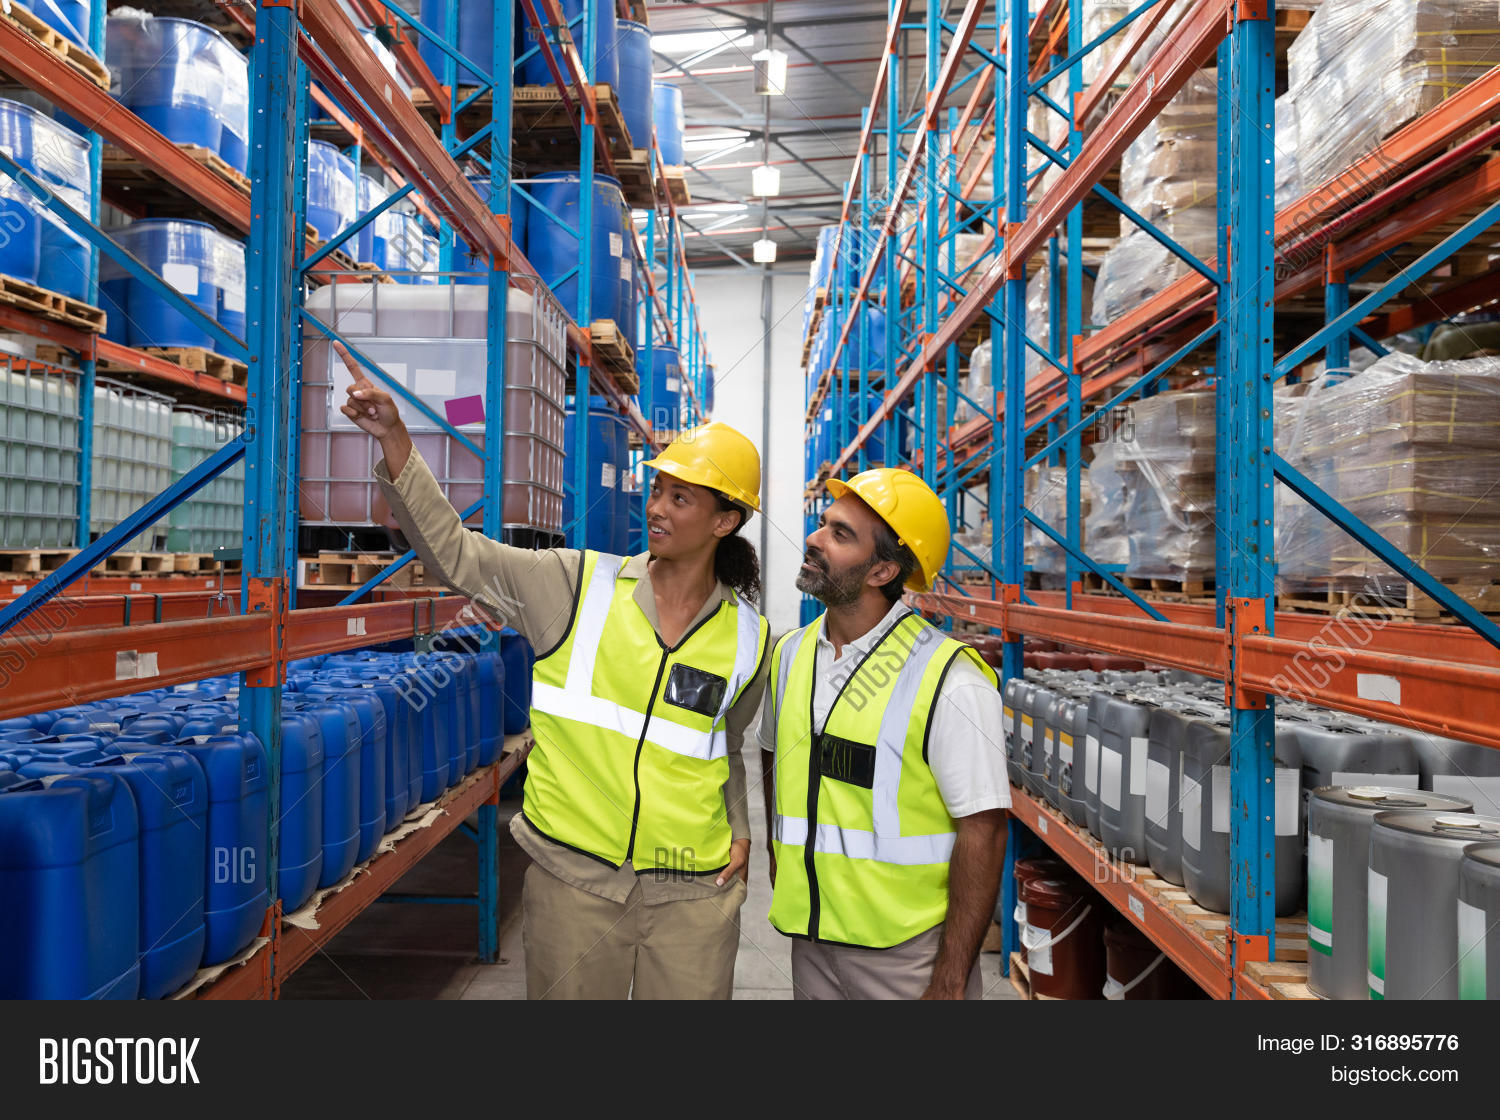 Front view of female worker showing something to male worker in warehouse. This is a freight transpo